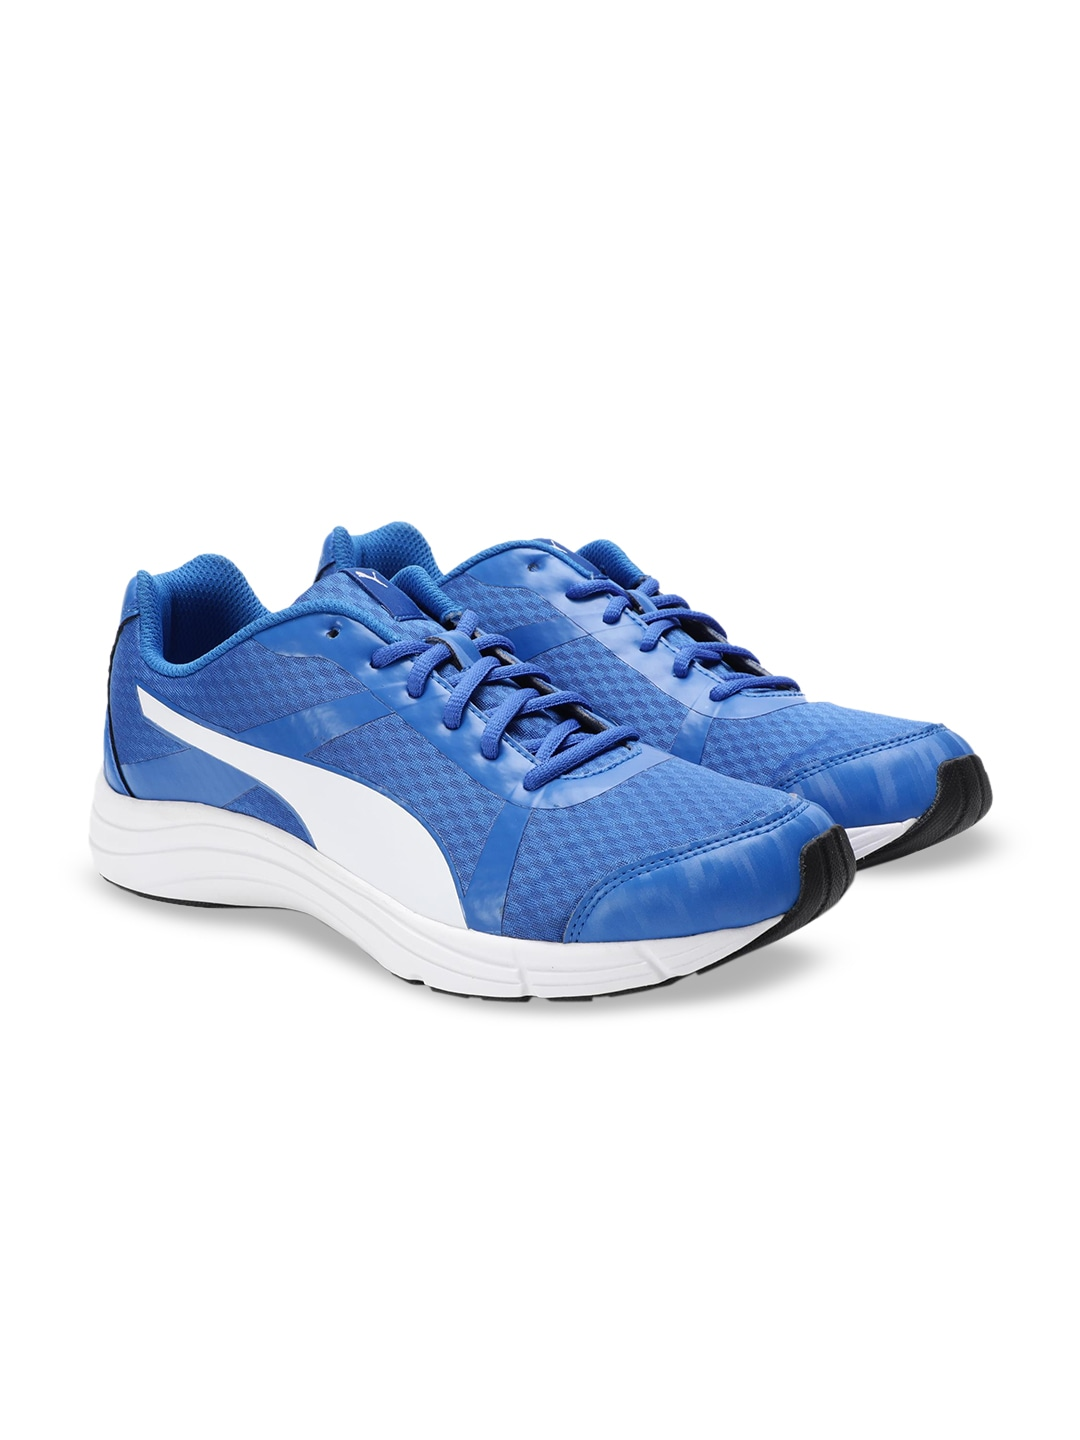 Blue Mesh Voyager IDP Running Shoes